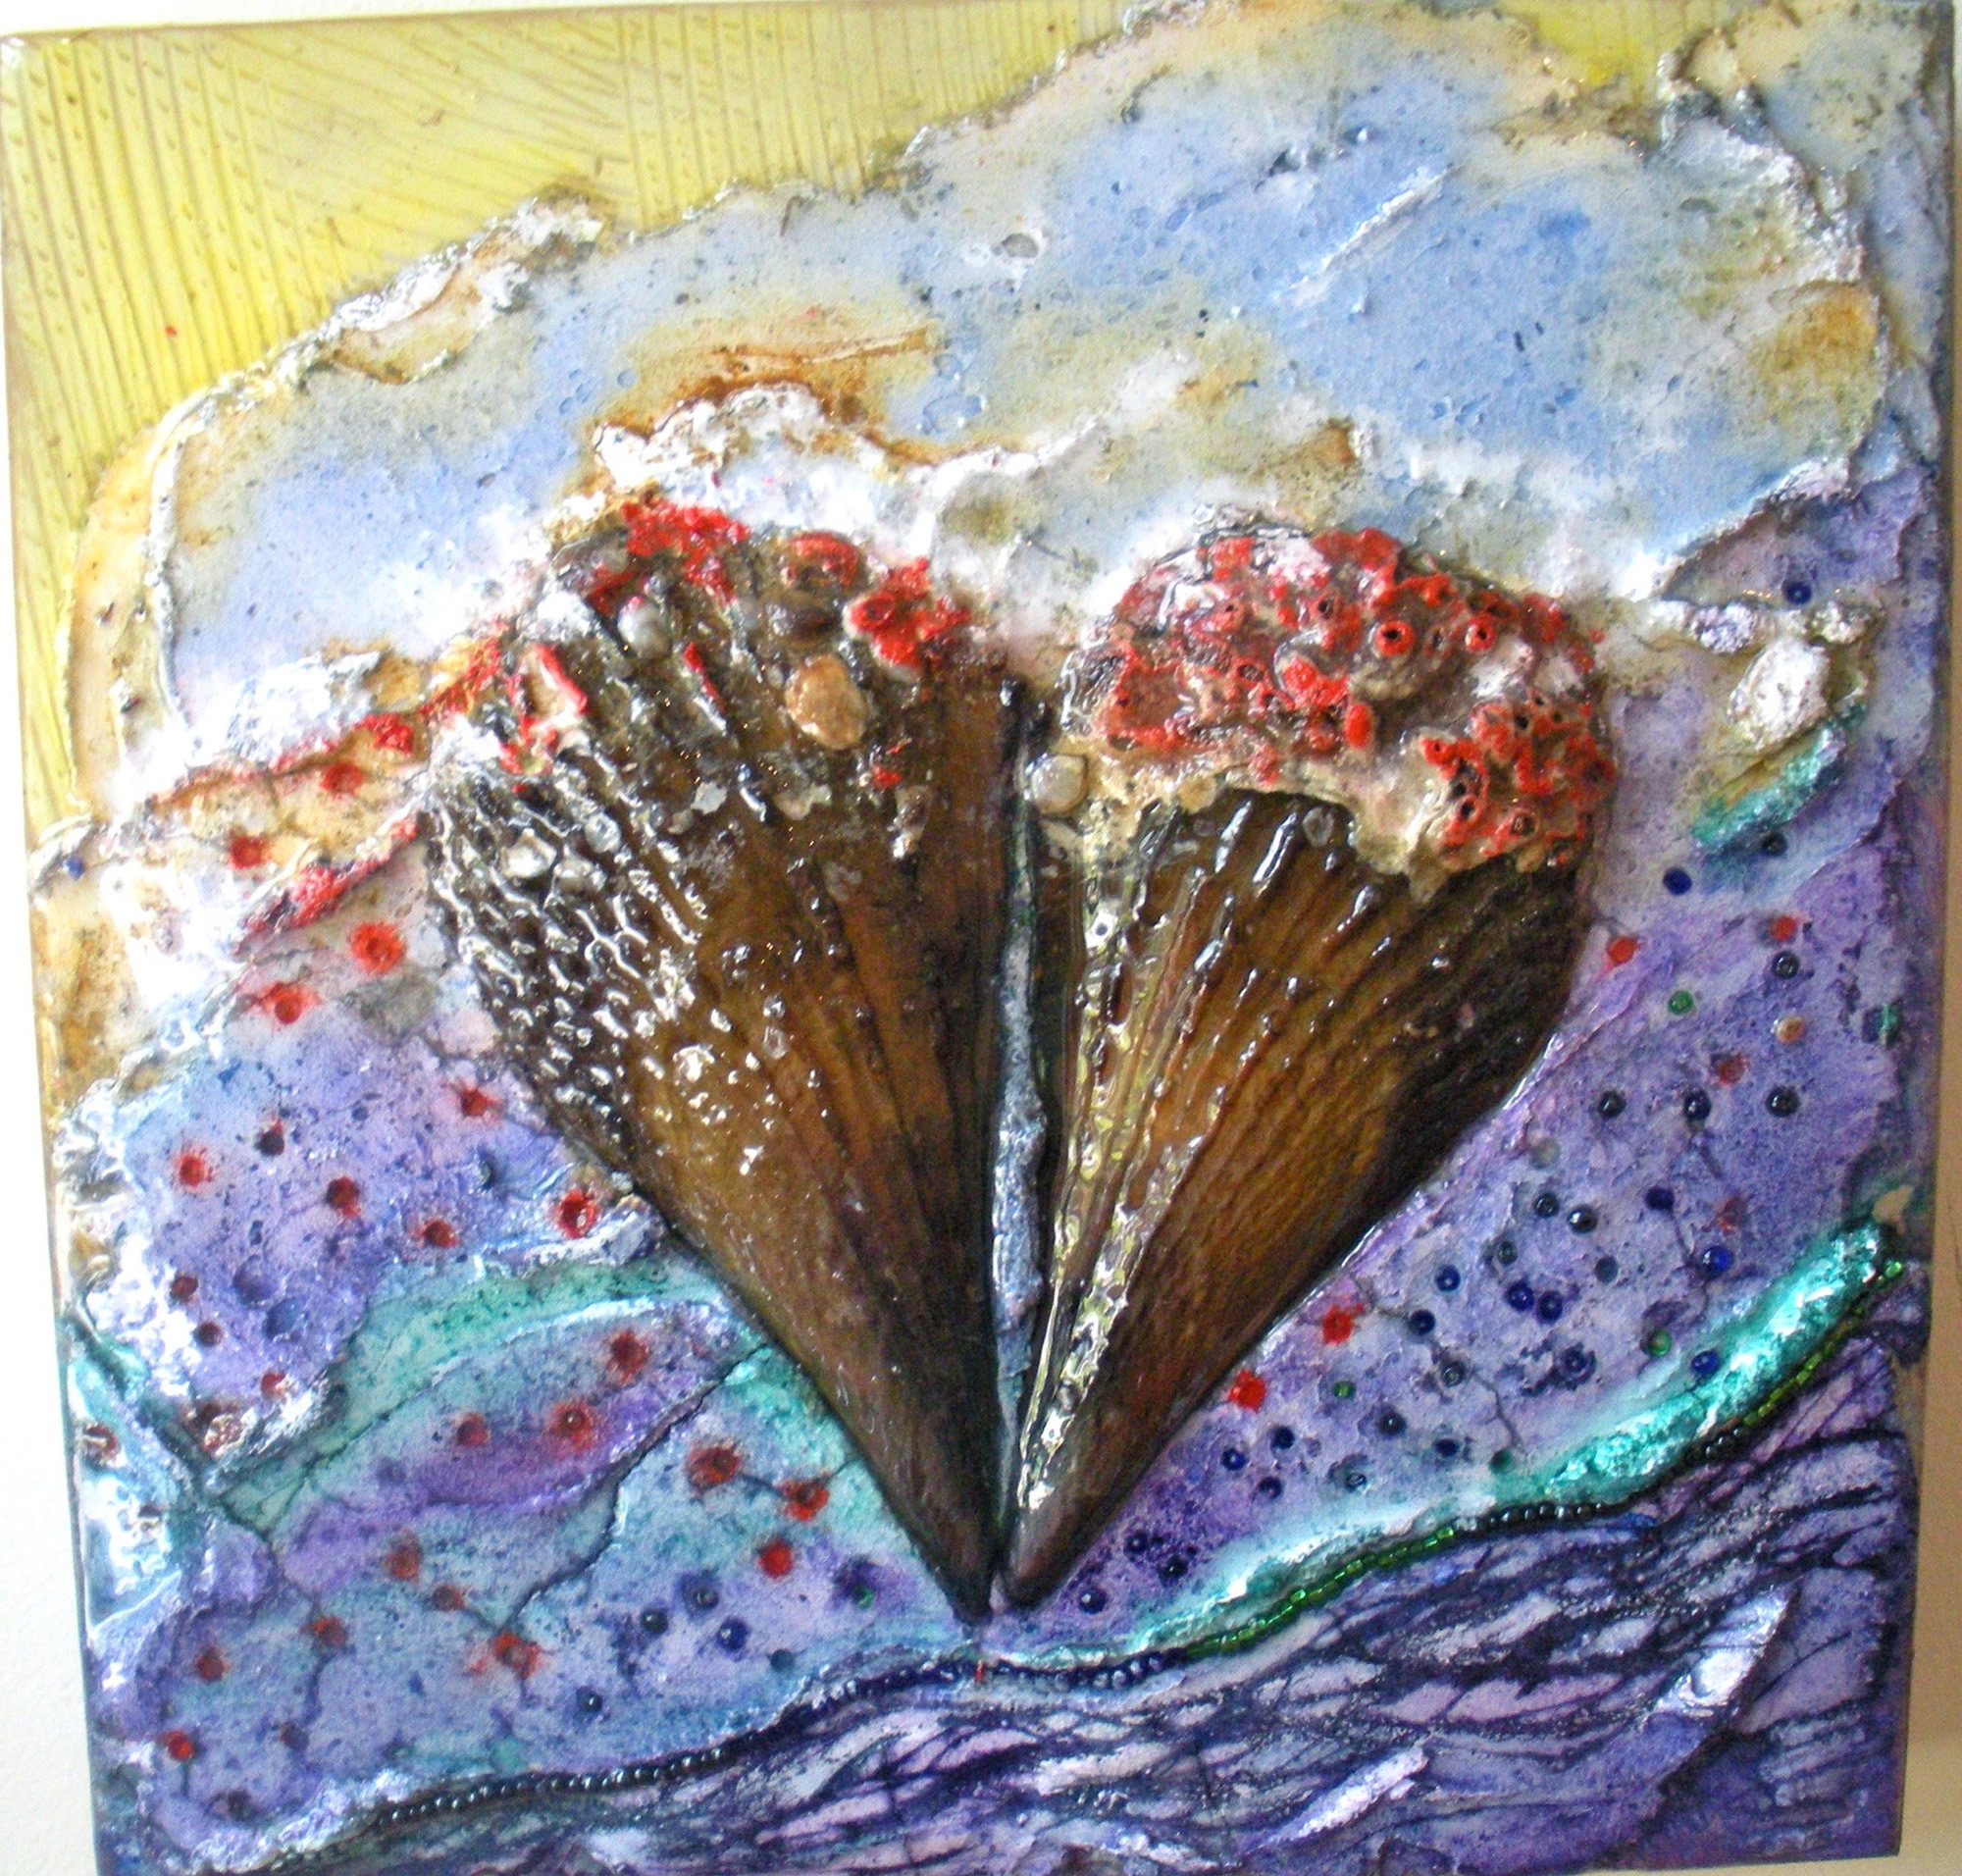 rita-schwab-art-with-a-heart-12x12-fresco-with-shell-inlay-highly-textured-resin-finish-250